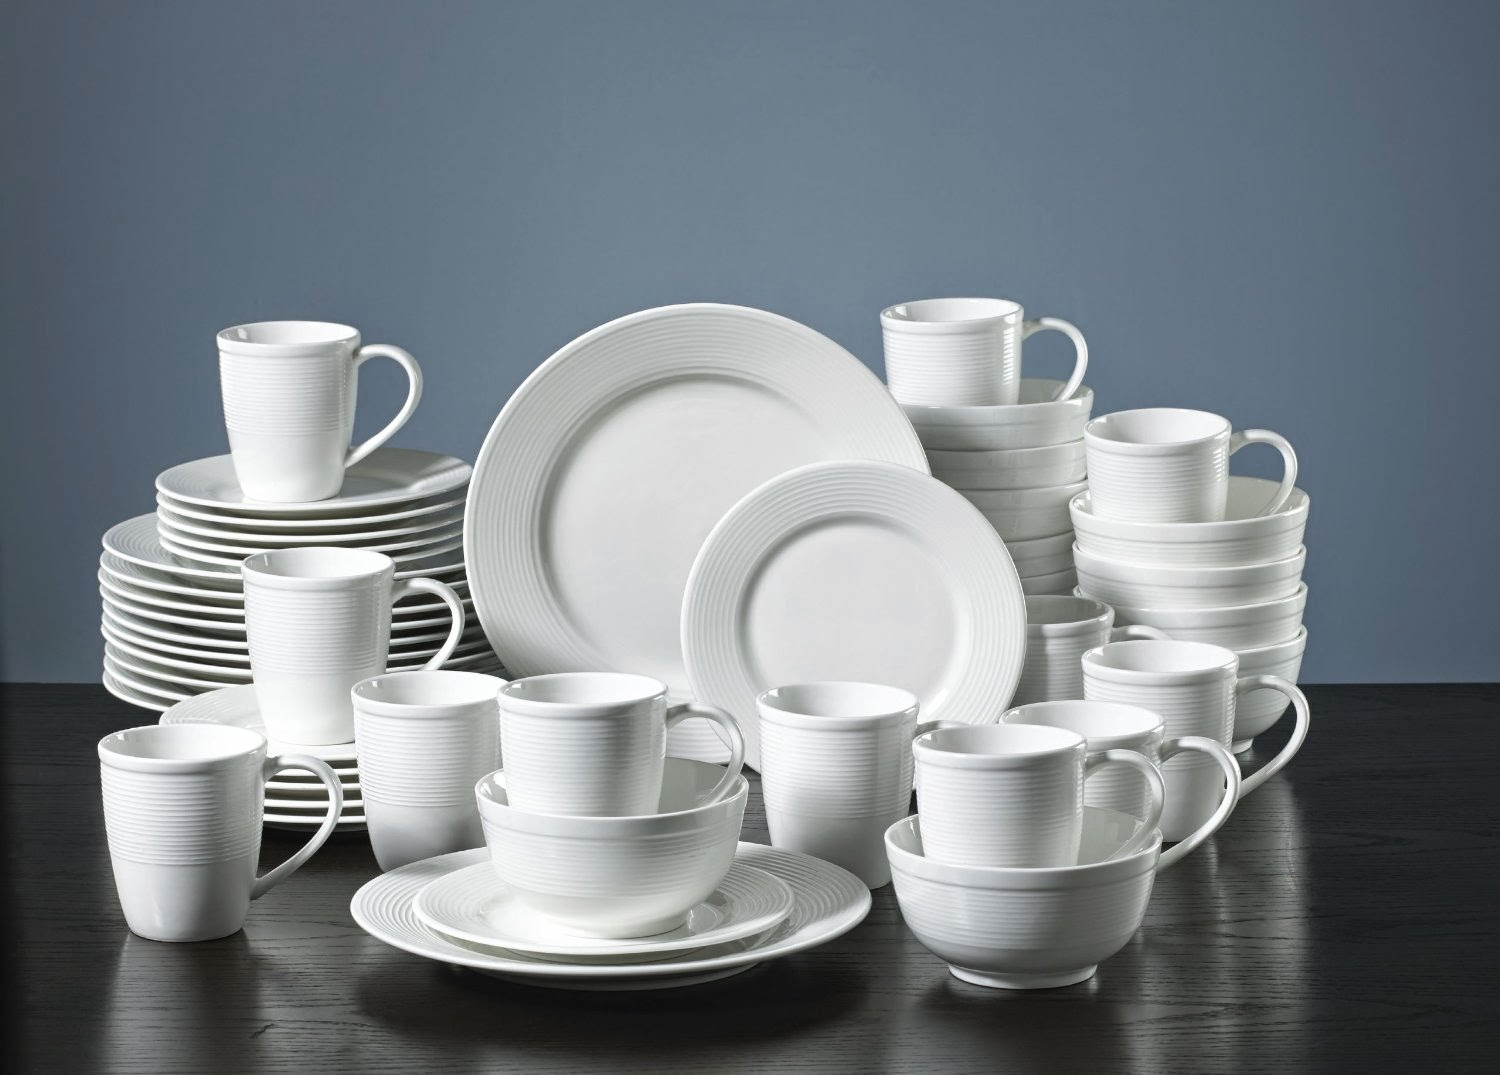 Gorham Pickwick 48-Piece Dinnerware Set & Dinnerware Sets: Gorham Pickwick 48-Piece Dinnerware Set Review For Sale